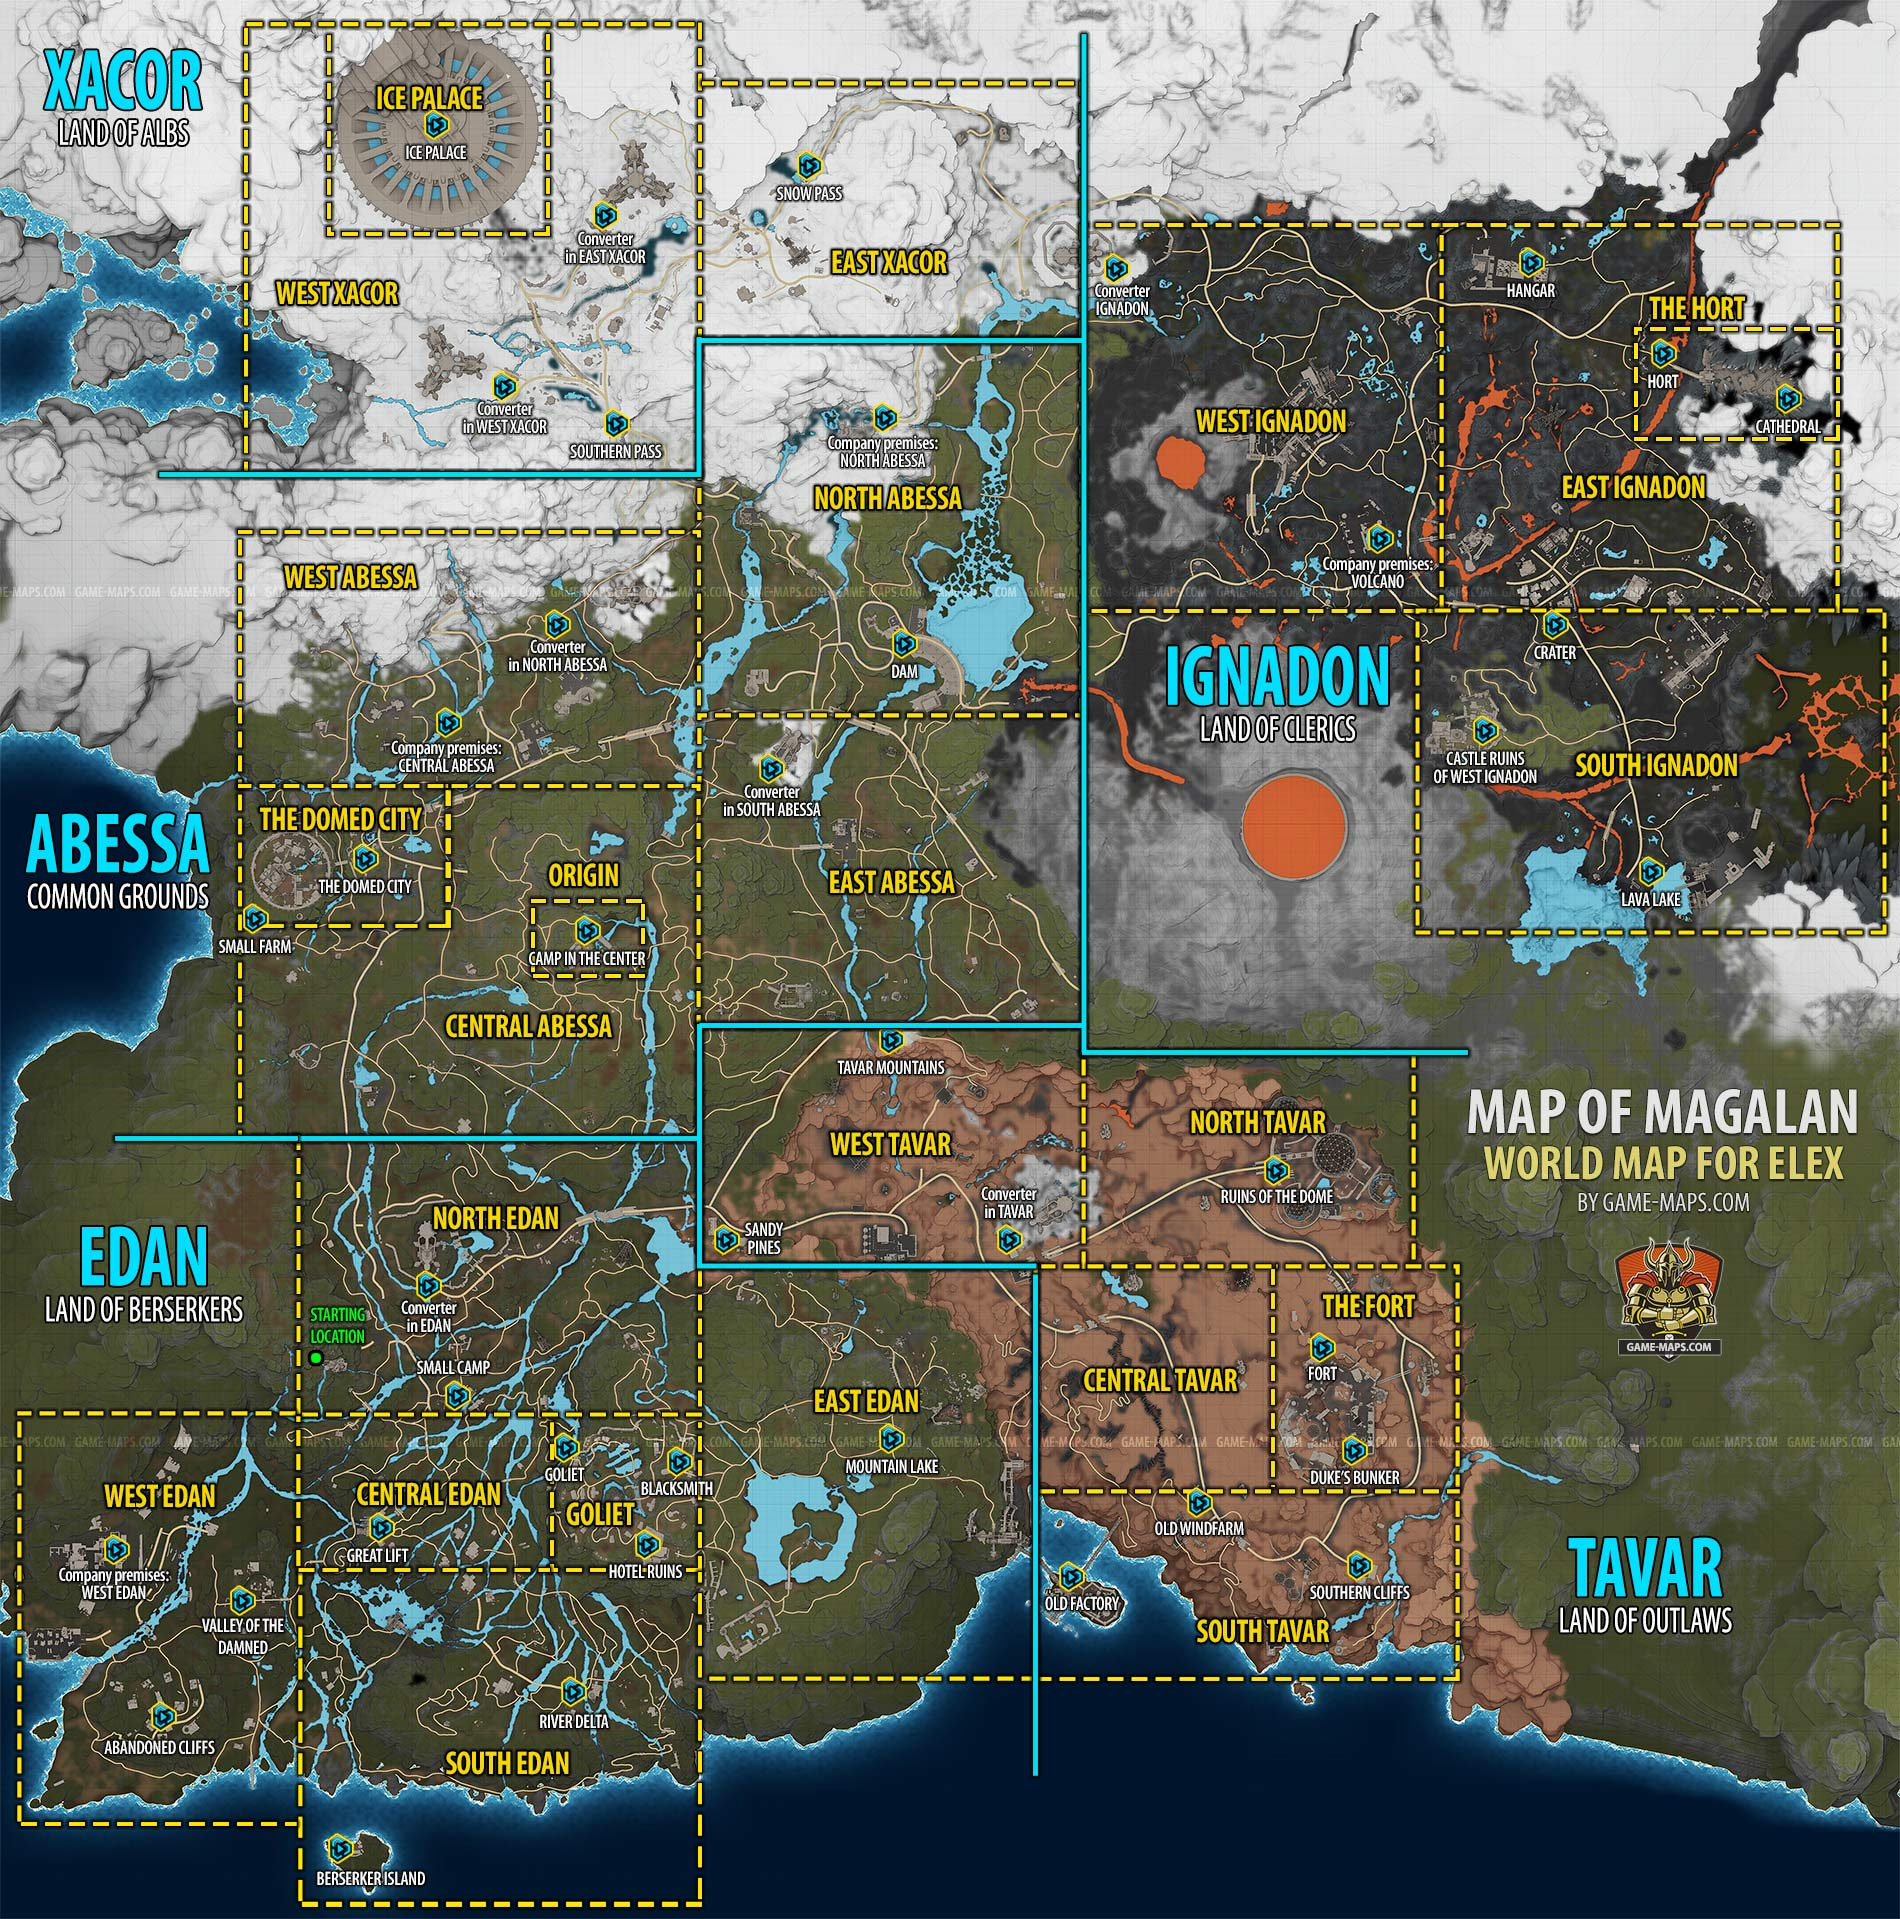 magalan world map for elex video game